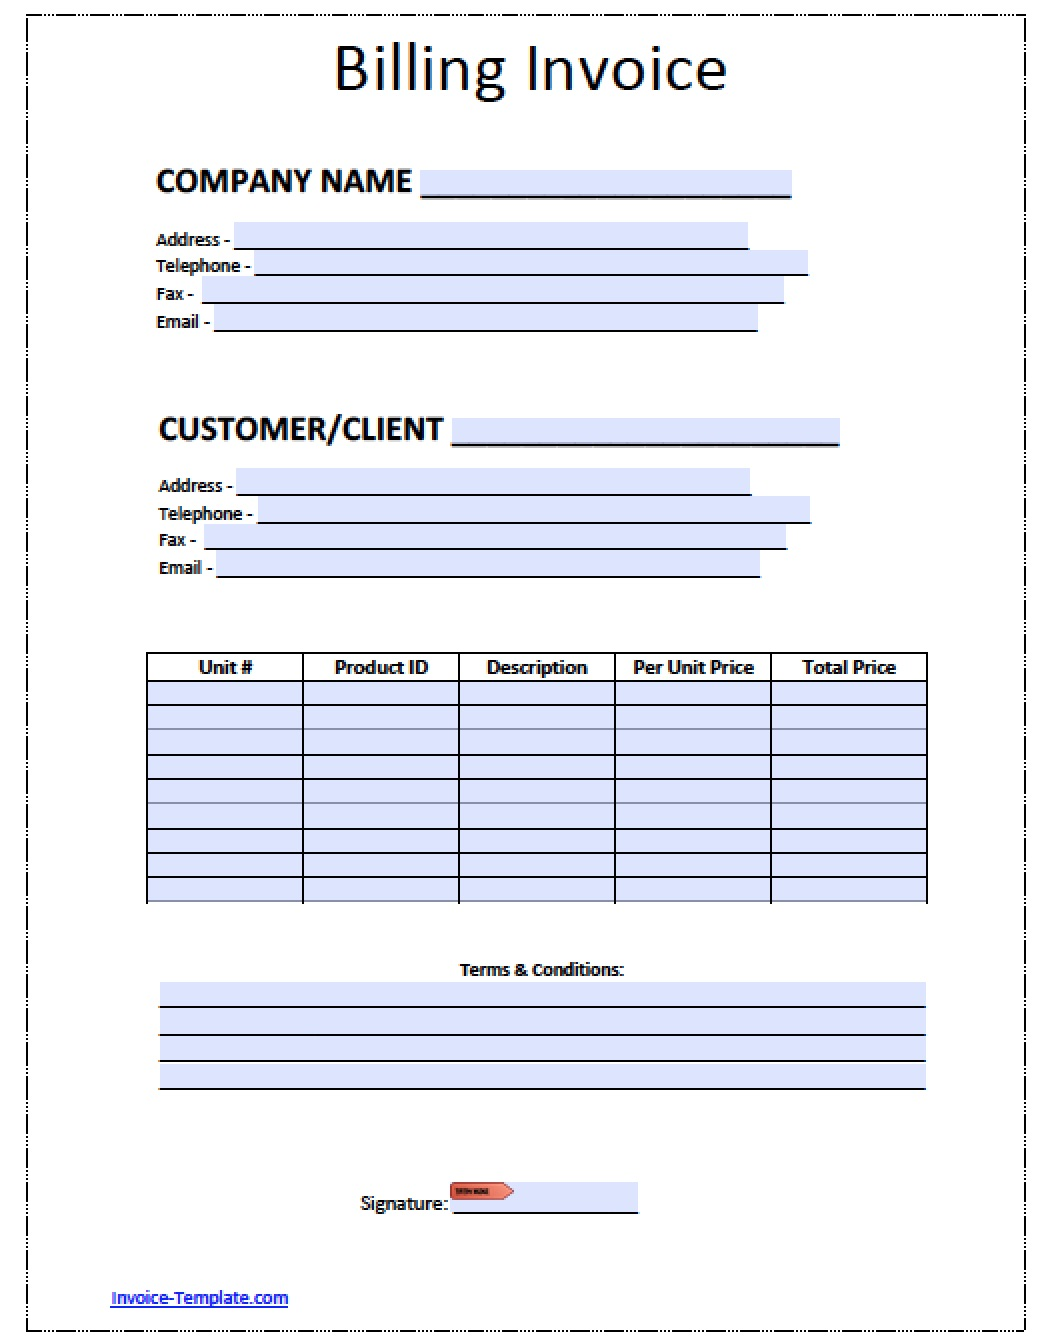 Generic Billing  Copy Of A Blank Invoice